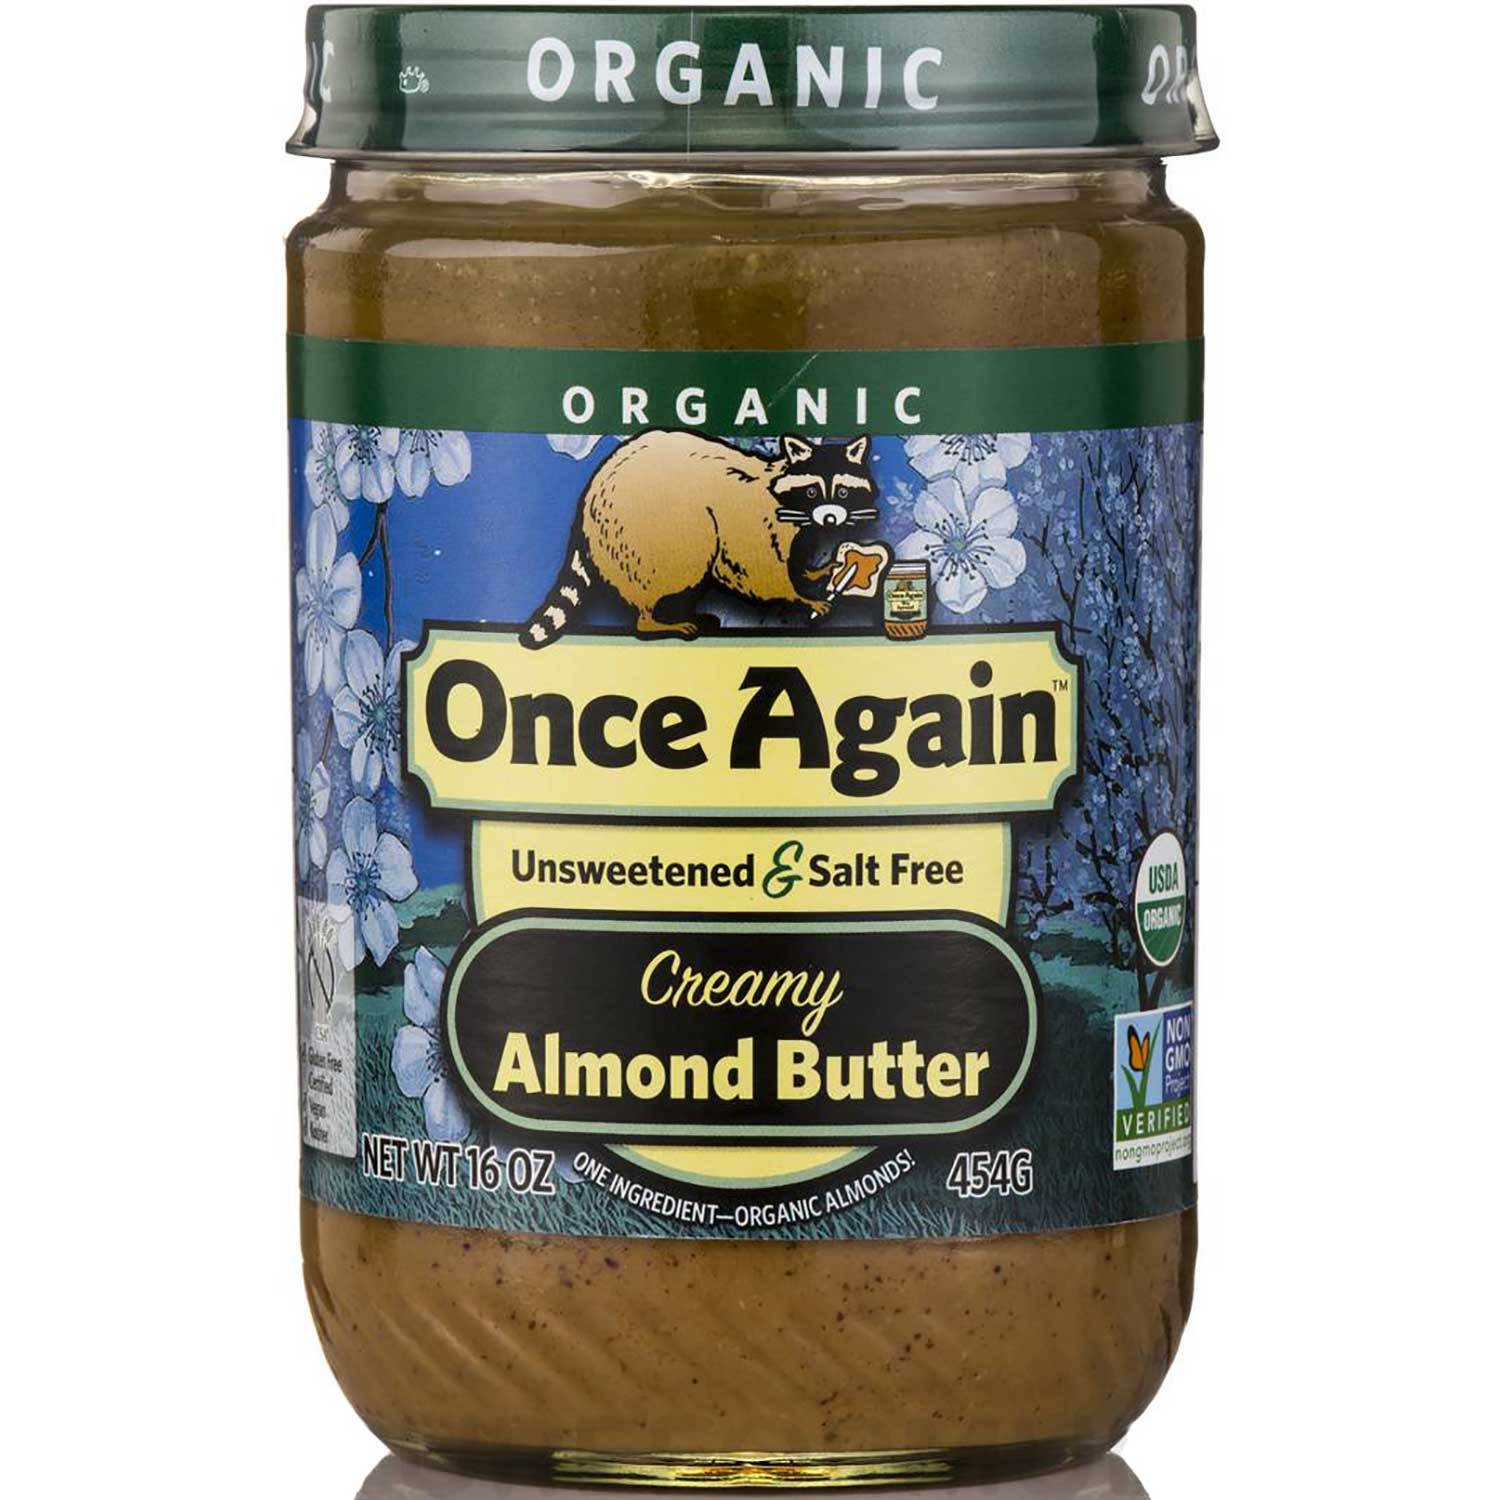 Once Again Nut Butter Organic Almond Butter - Creamy Unsweetened & Salt Free, 454 g